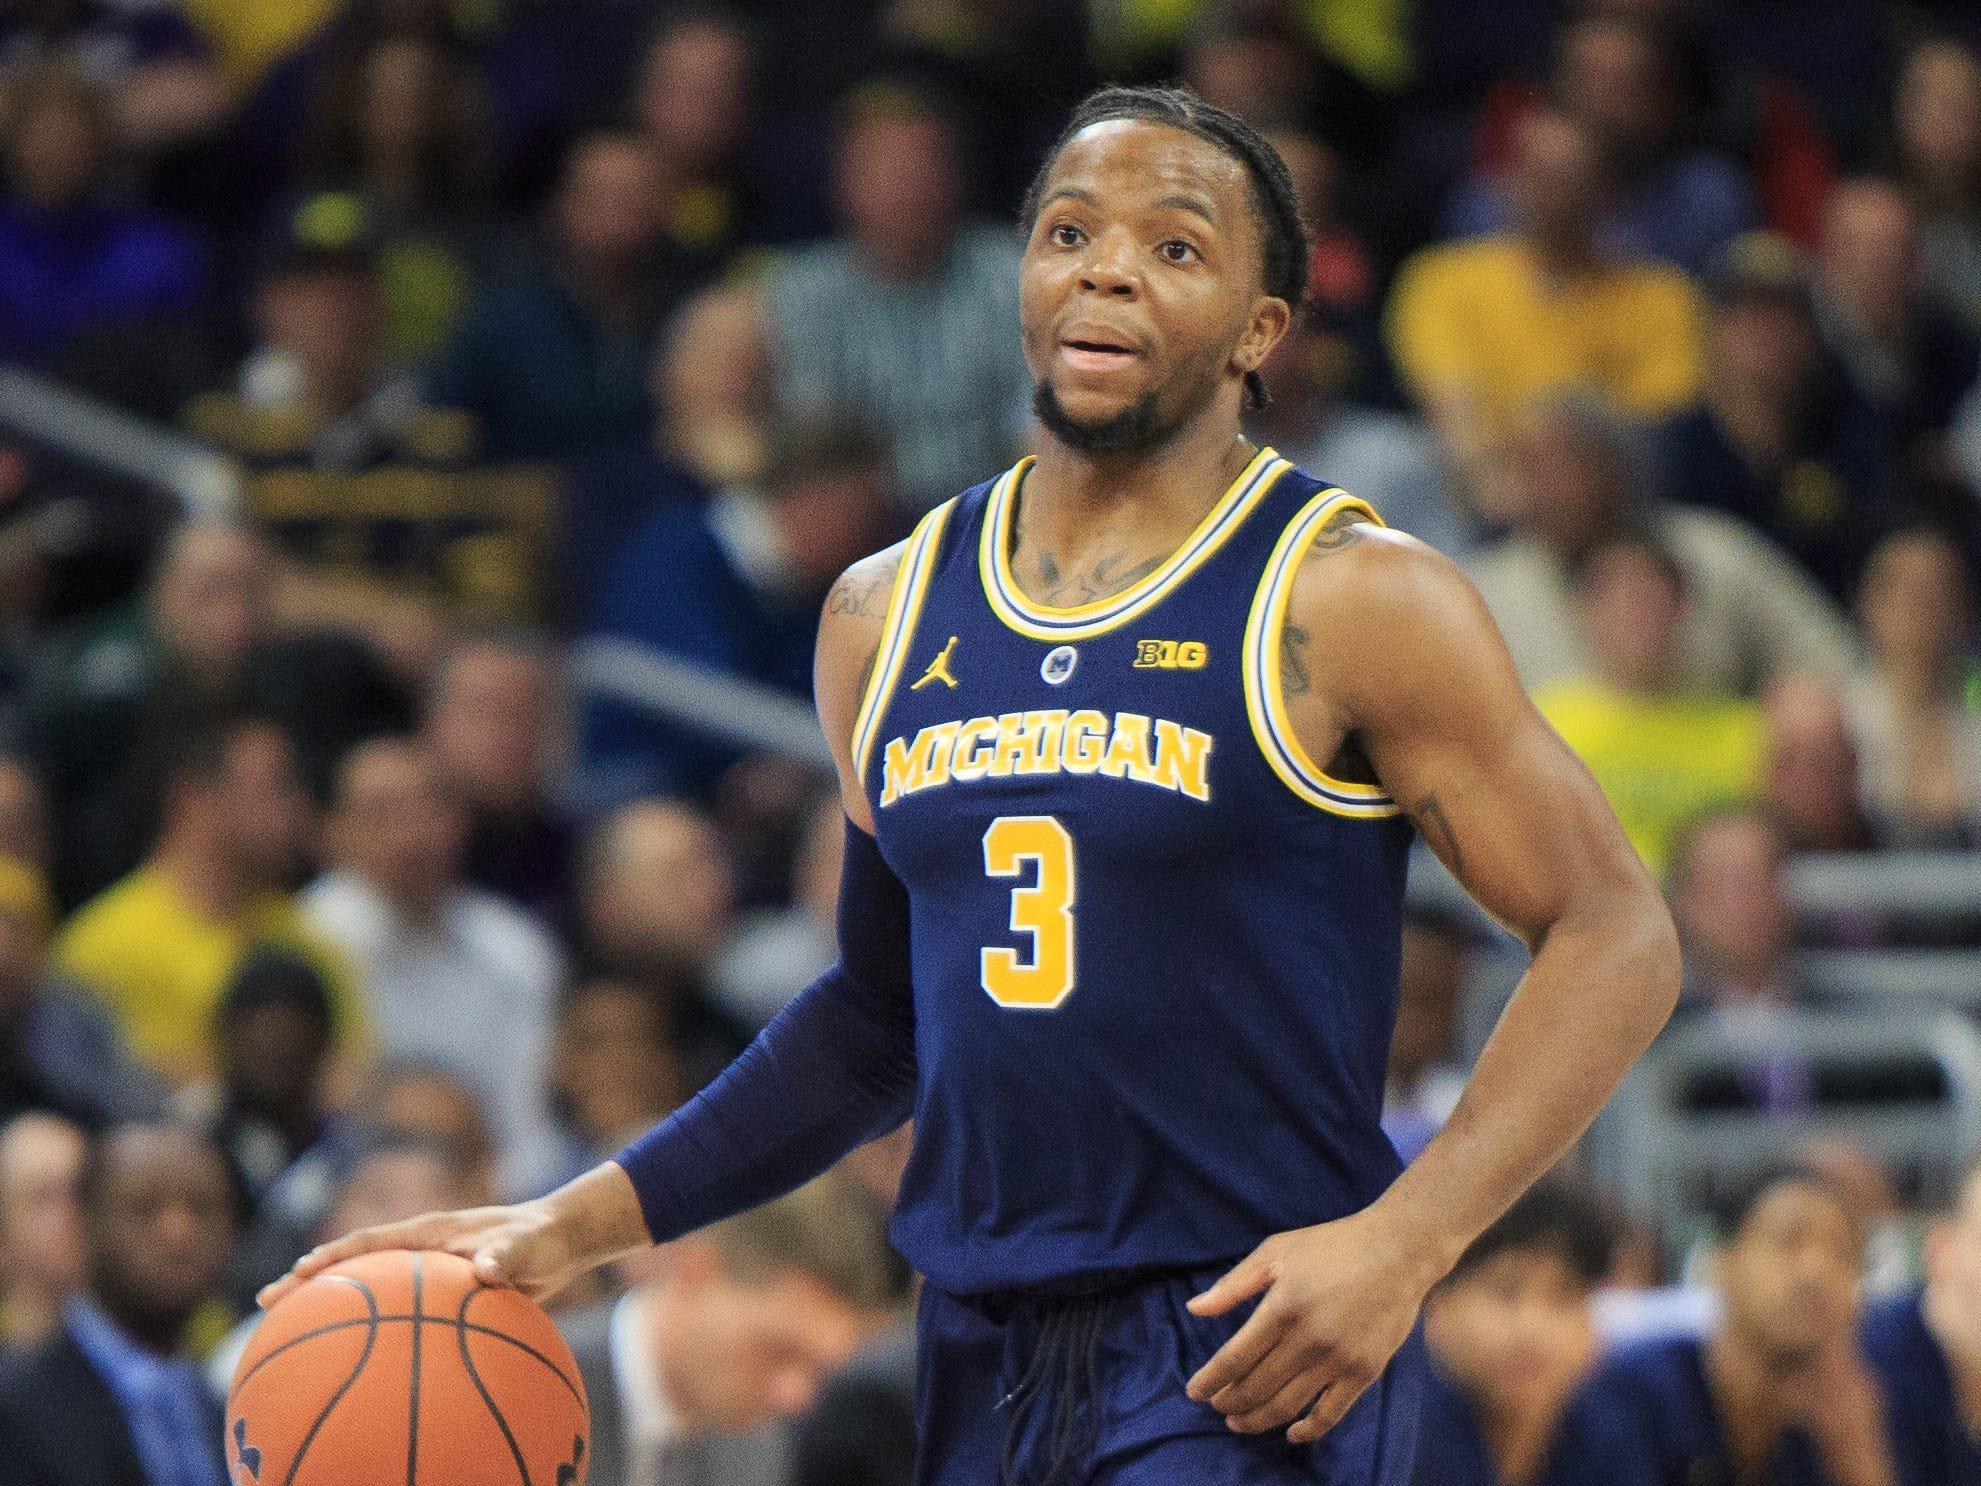 Michigan's Zavier Simpson dribbles against Northwestern in the first half at Welsh-Ryan Arena on Dec. 4, 2018 in Evanston, Ill.